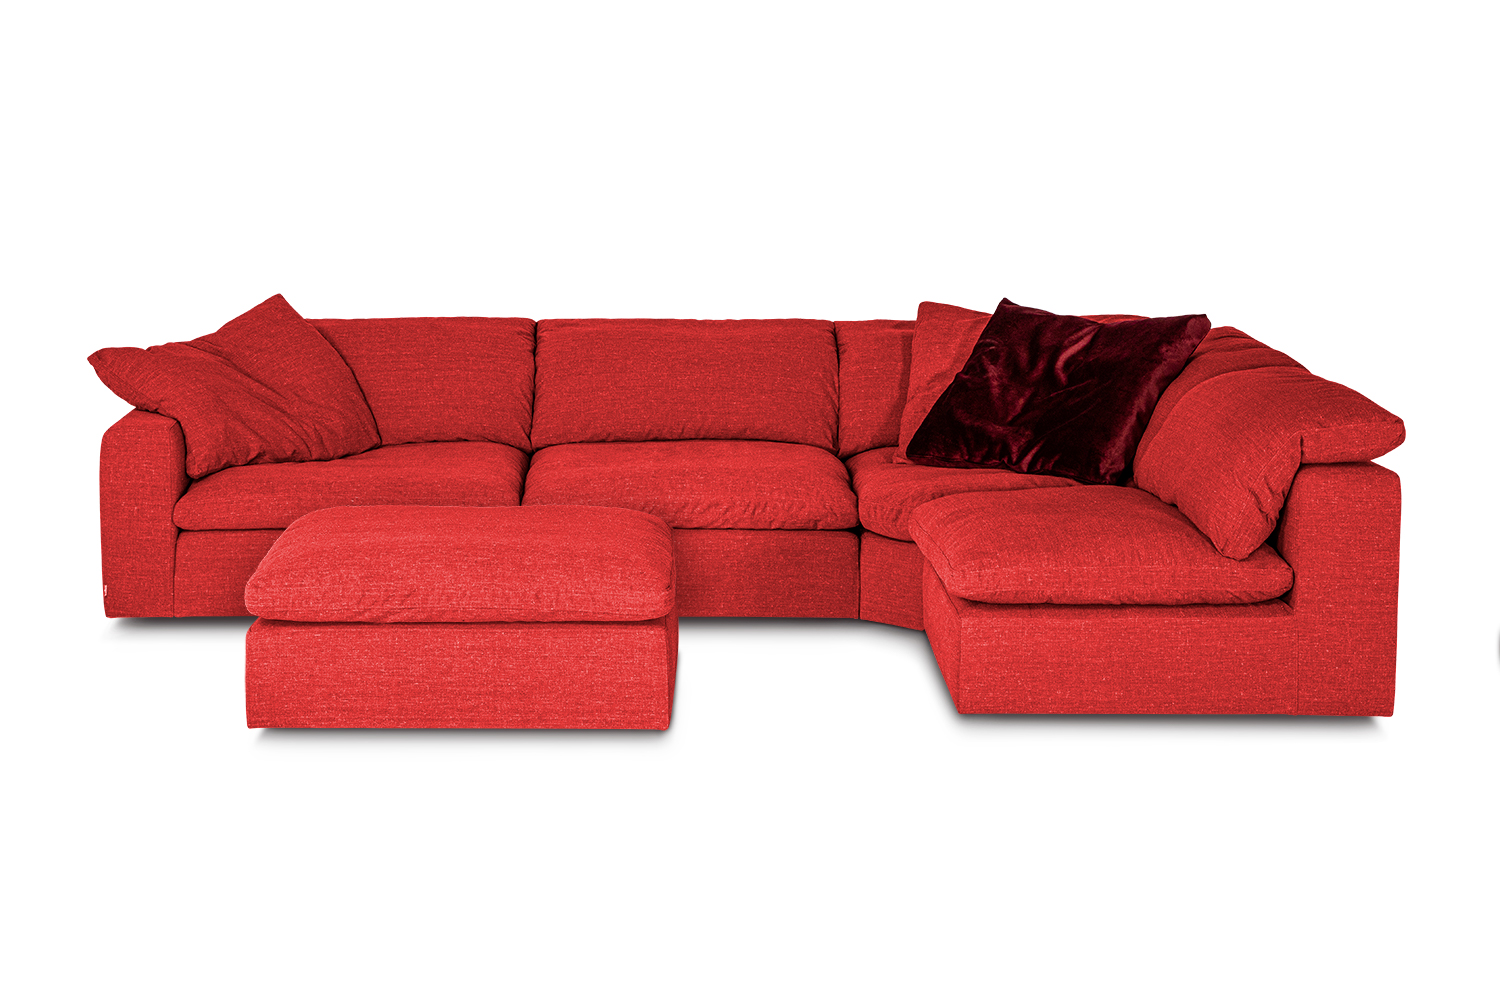 In picture Tribeca A11E1 Sahara 8200 with footstool